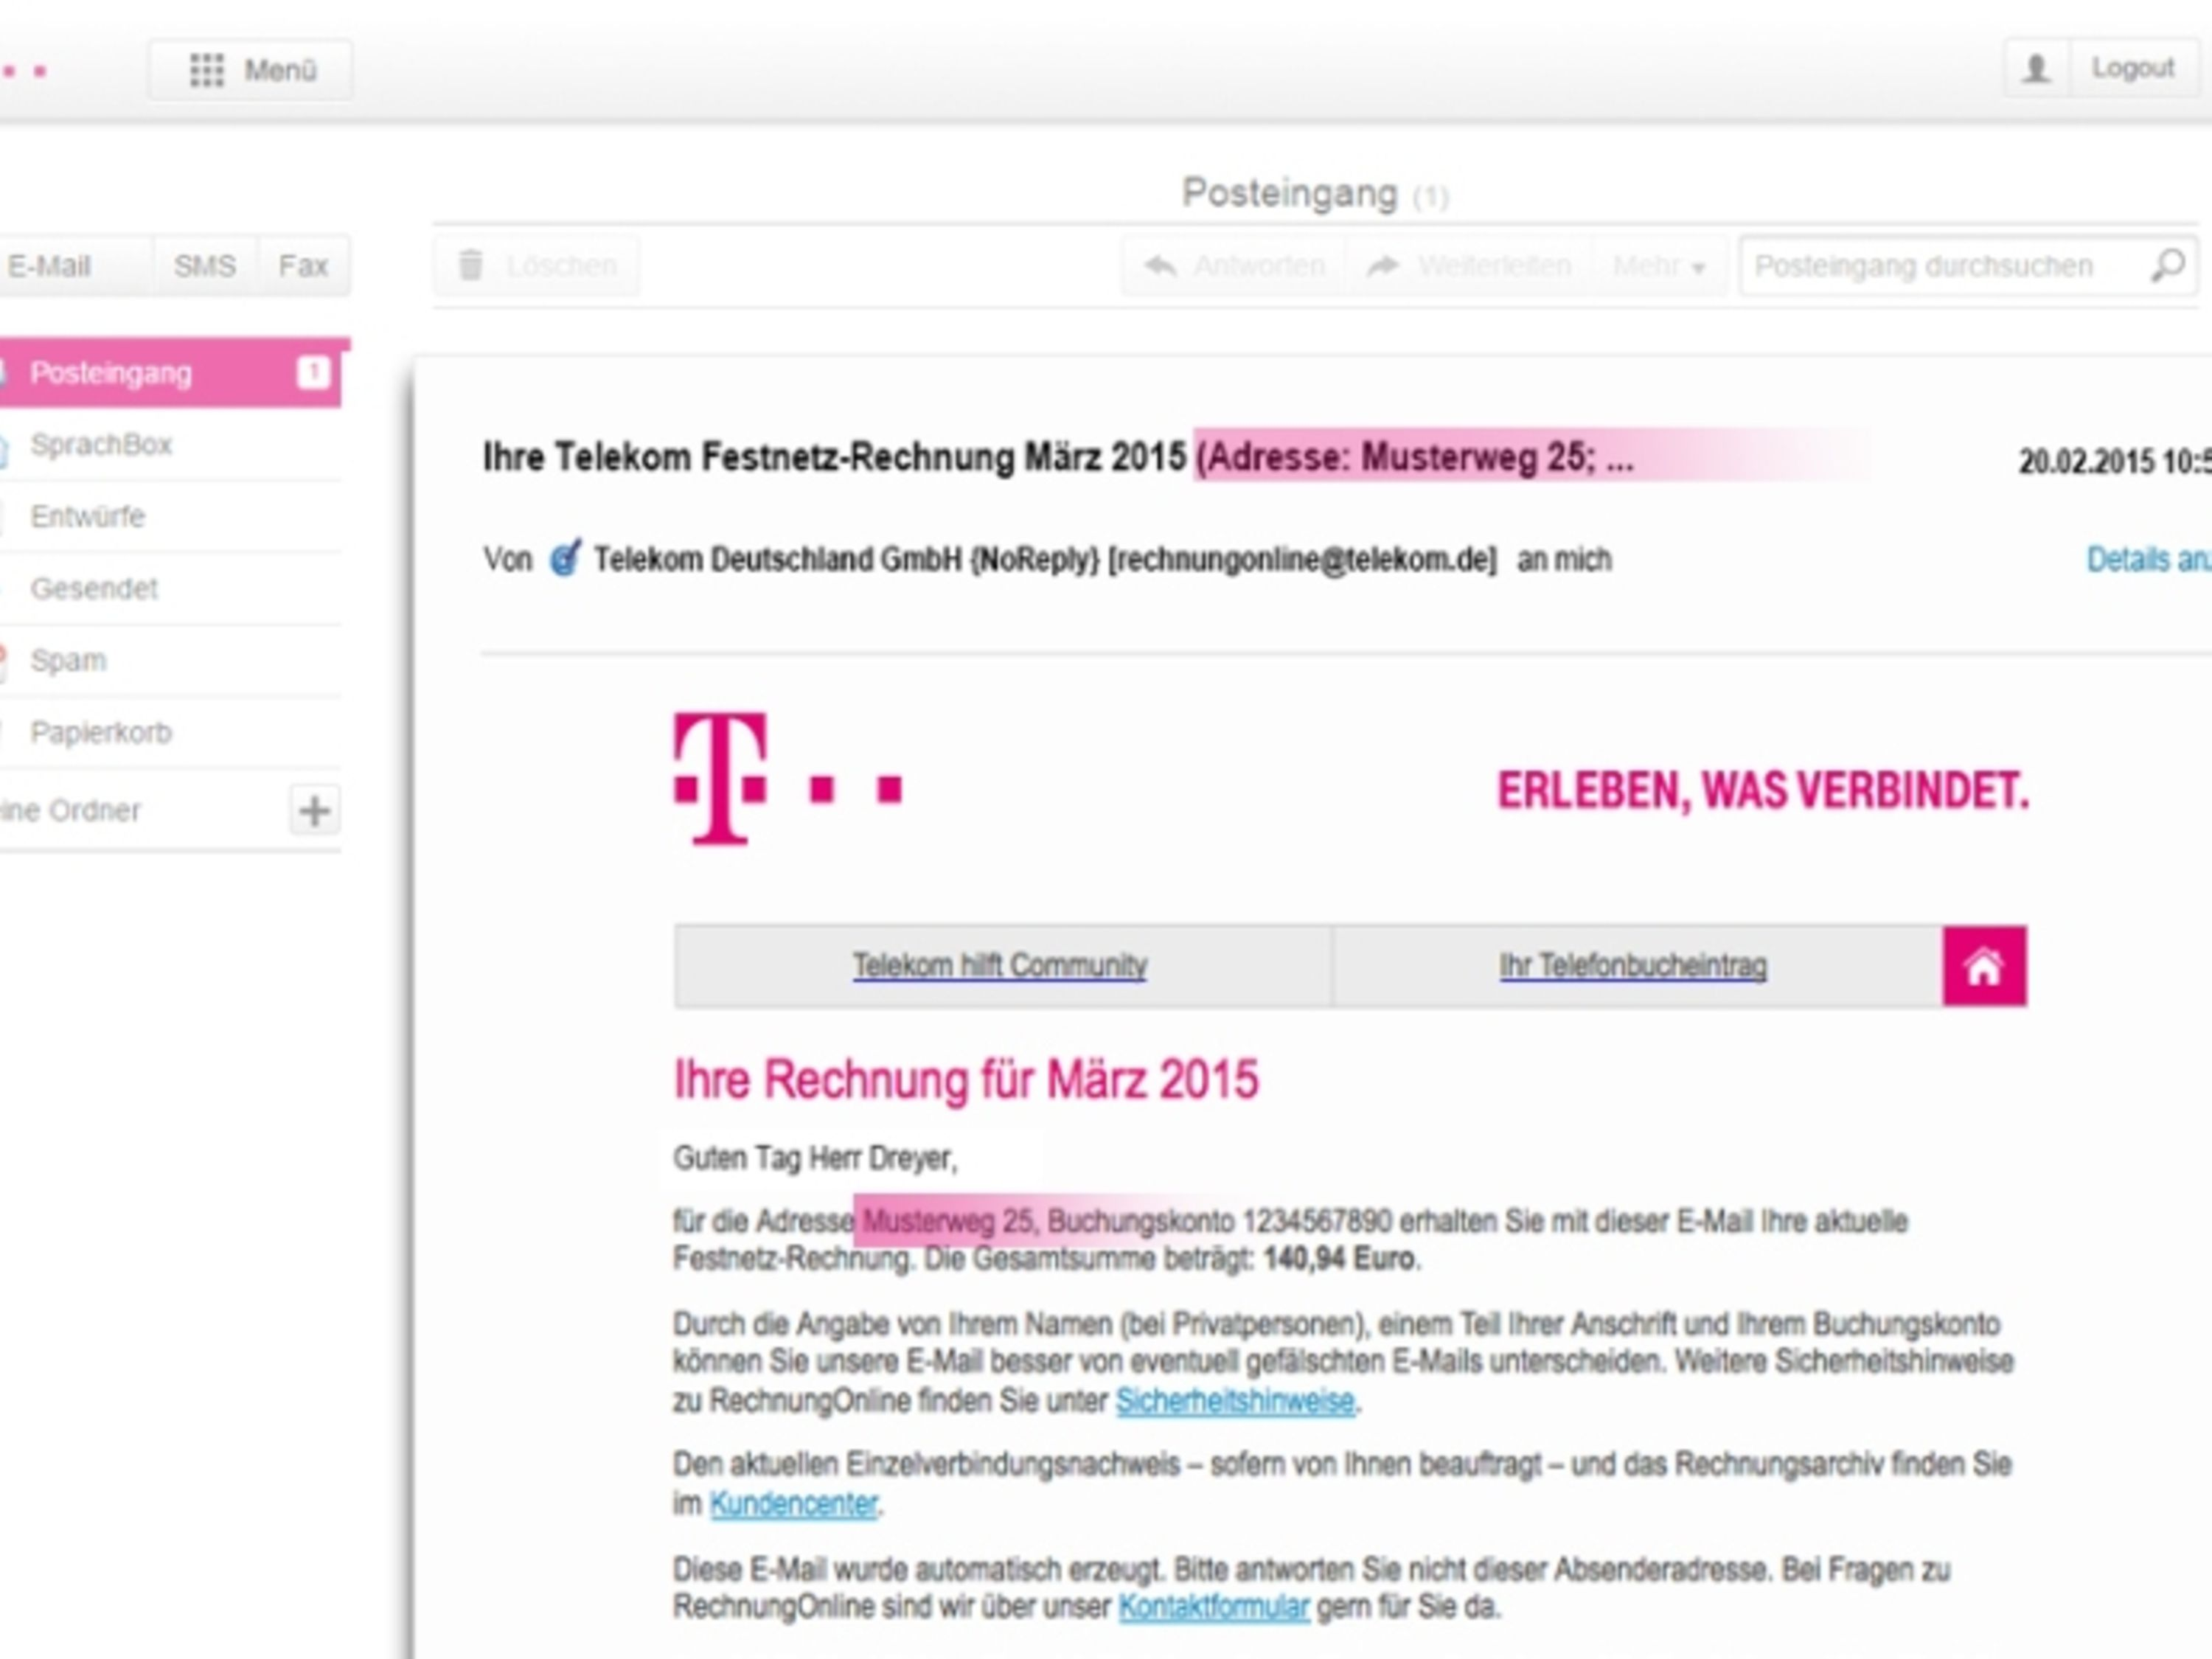 deutsche telekom so macht die telekom die rechnung online sicherer. Black Bedroom Furniture Sets. Home Design Ideas